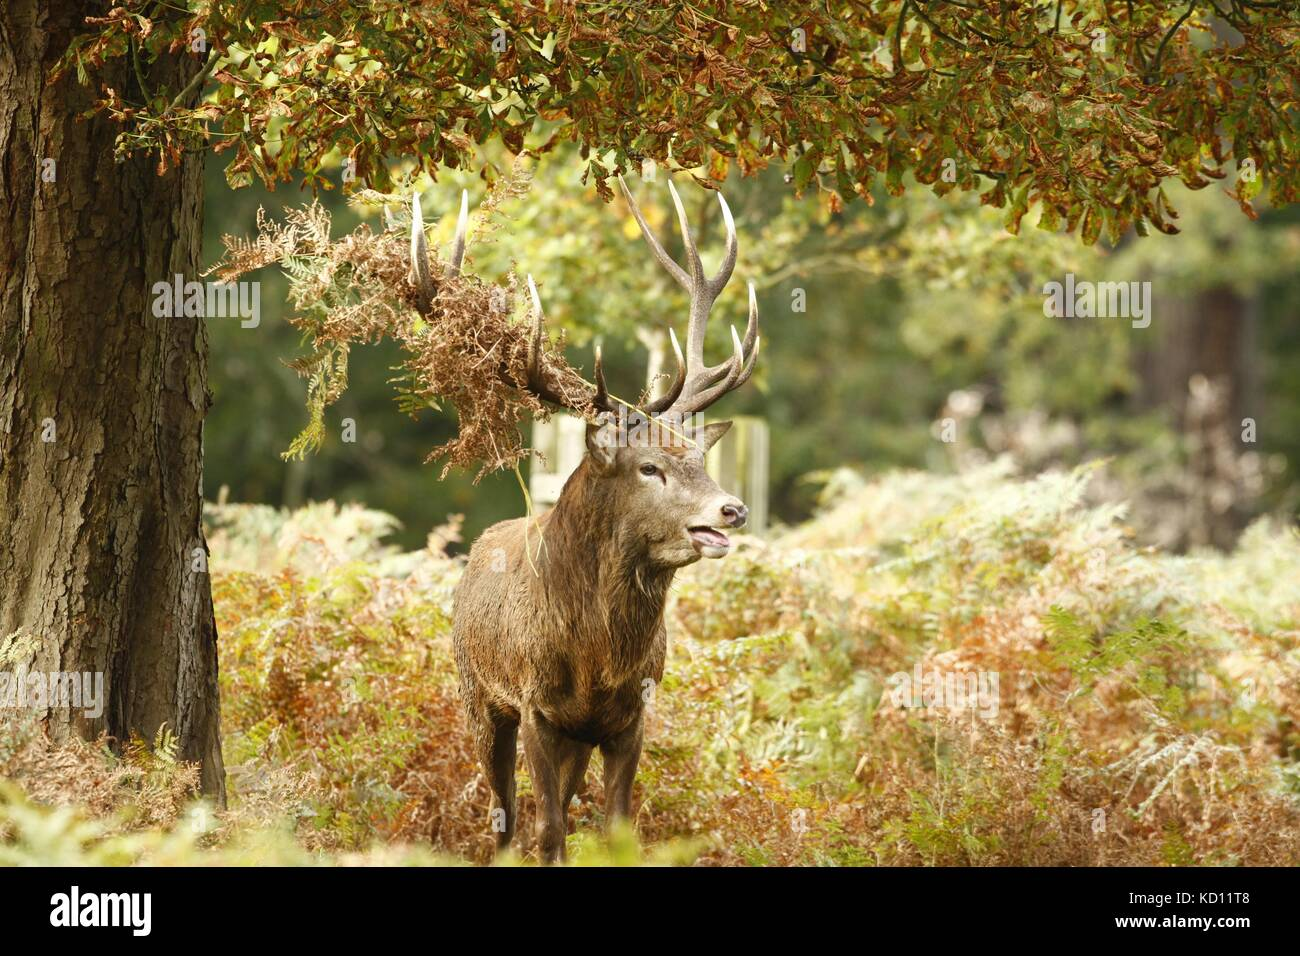 Richmond park, London. 9th Oct 2017. UK weather. A Red deer stag bellows during the annual rut in Richmond park, Stock Photo